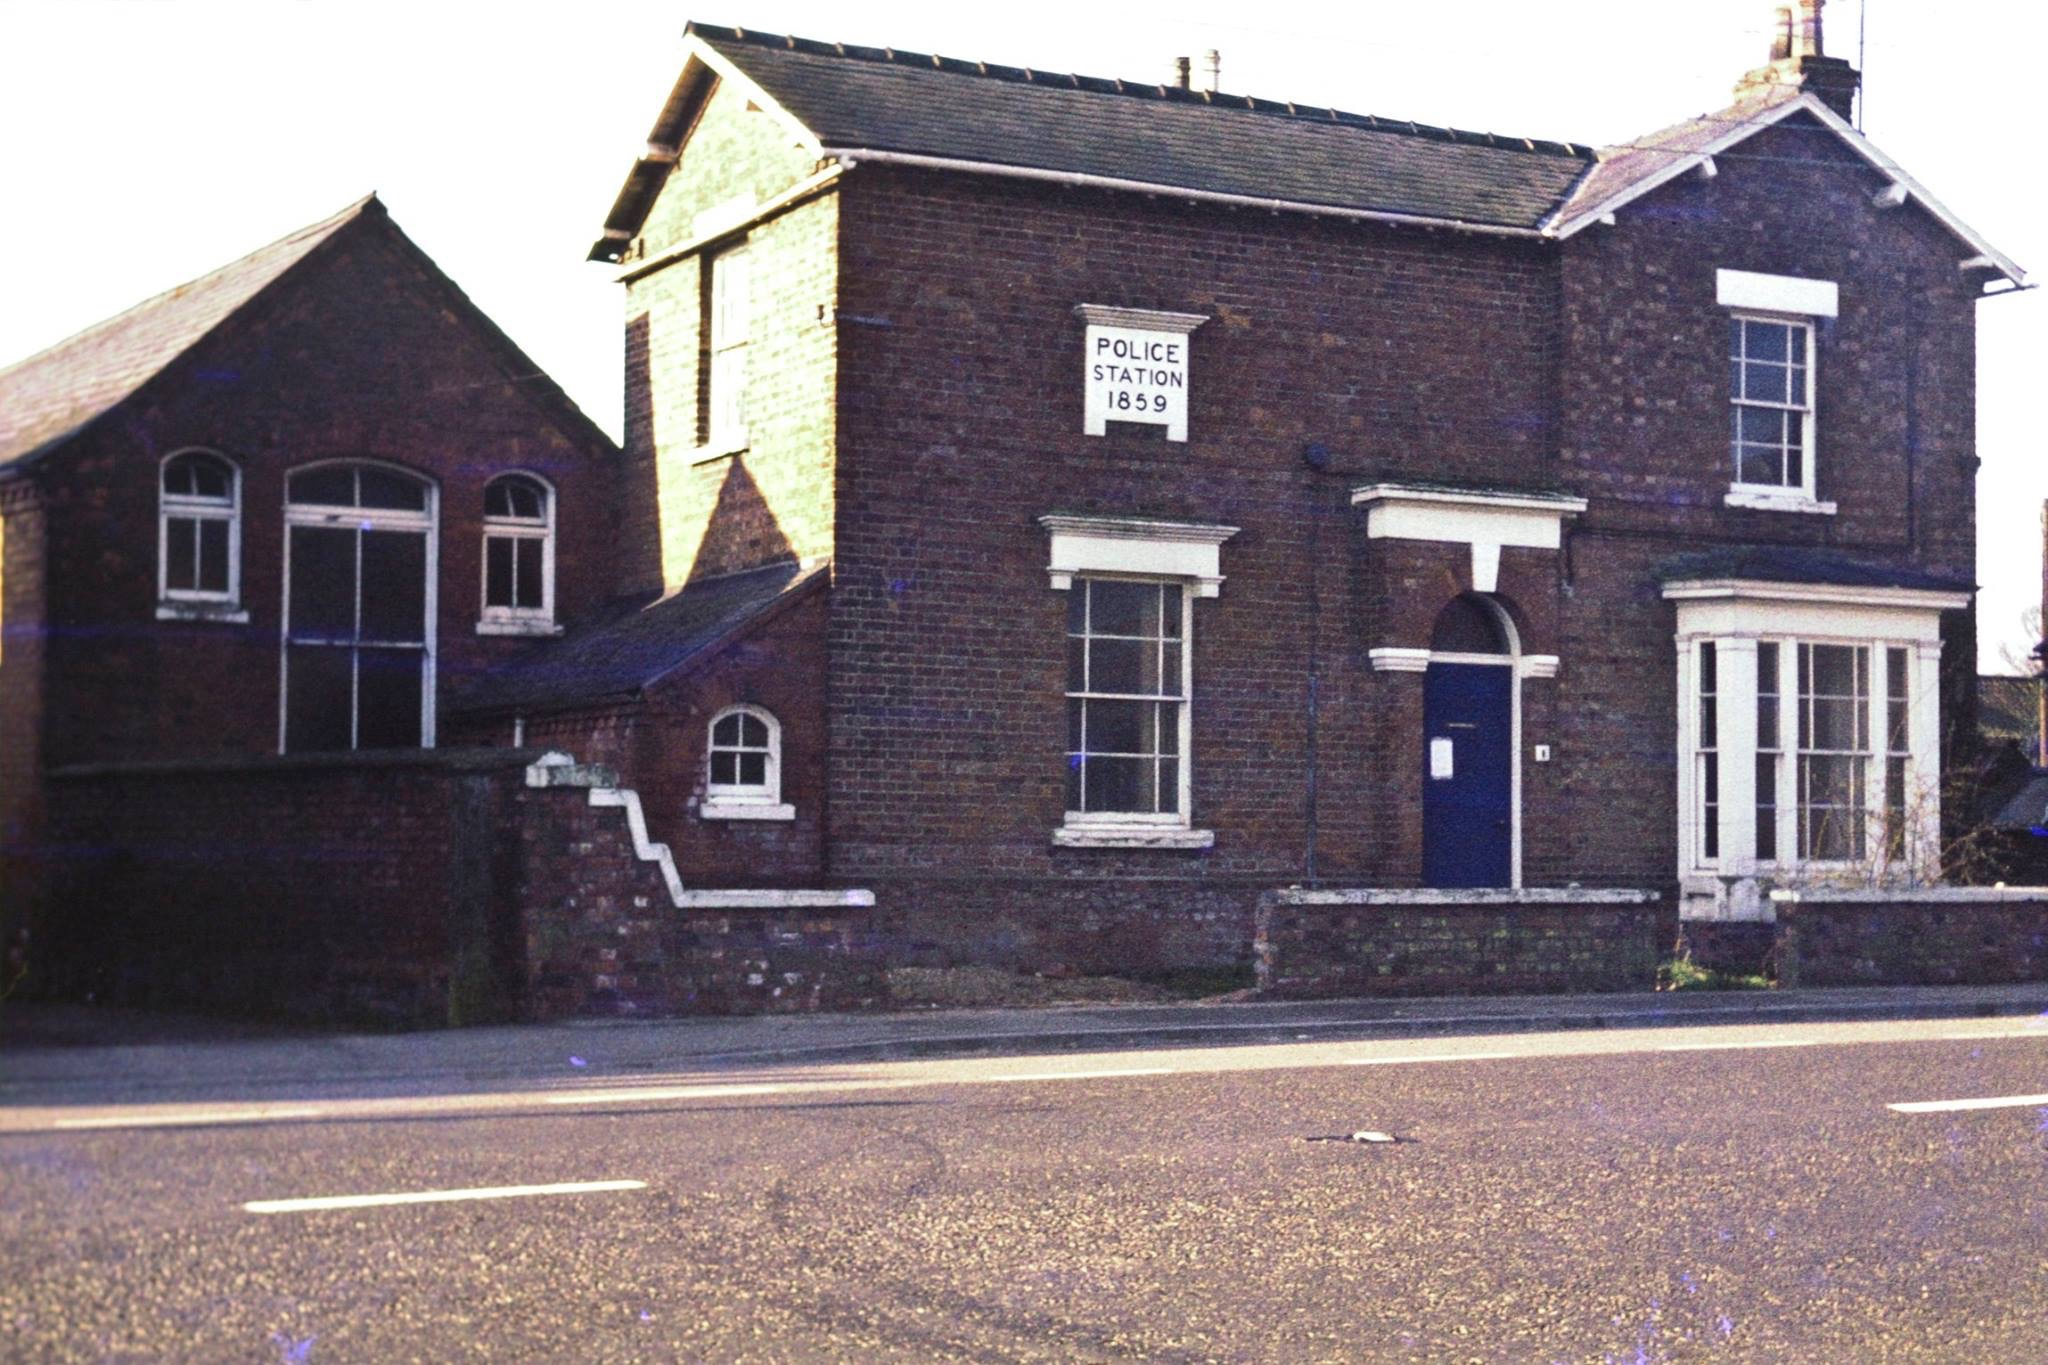 Police Station Donington built 1859